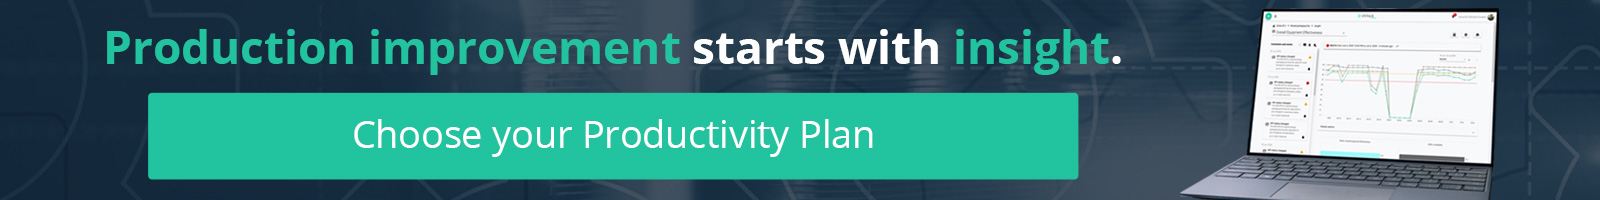 Production improvement starts with insight. Choose your Productivity Plan.